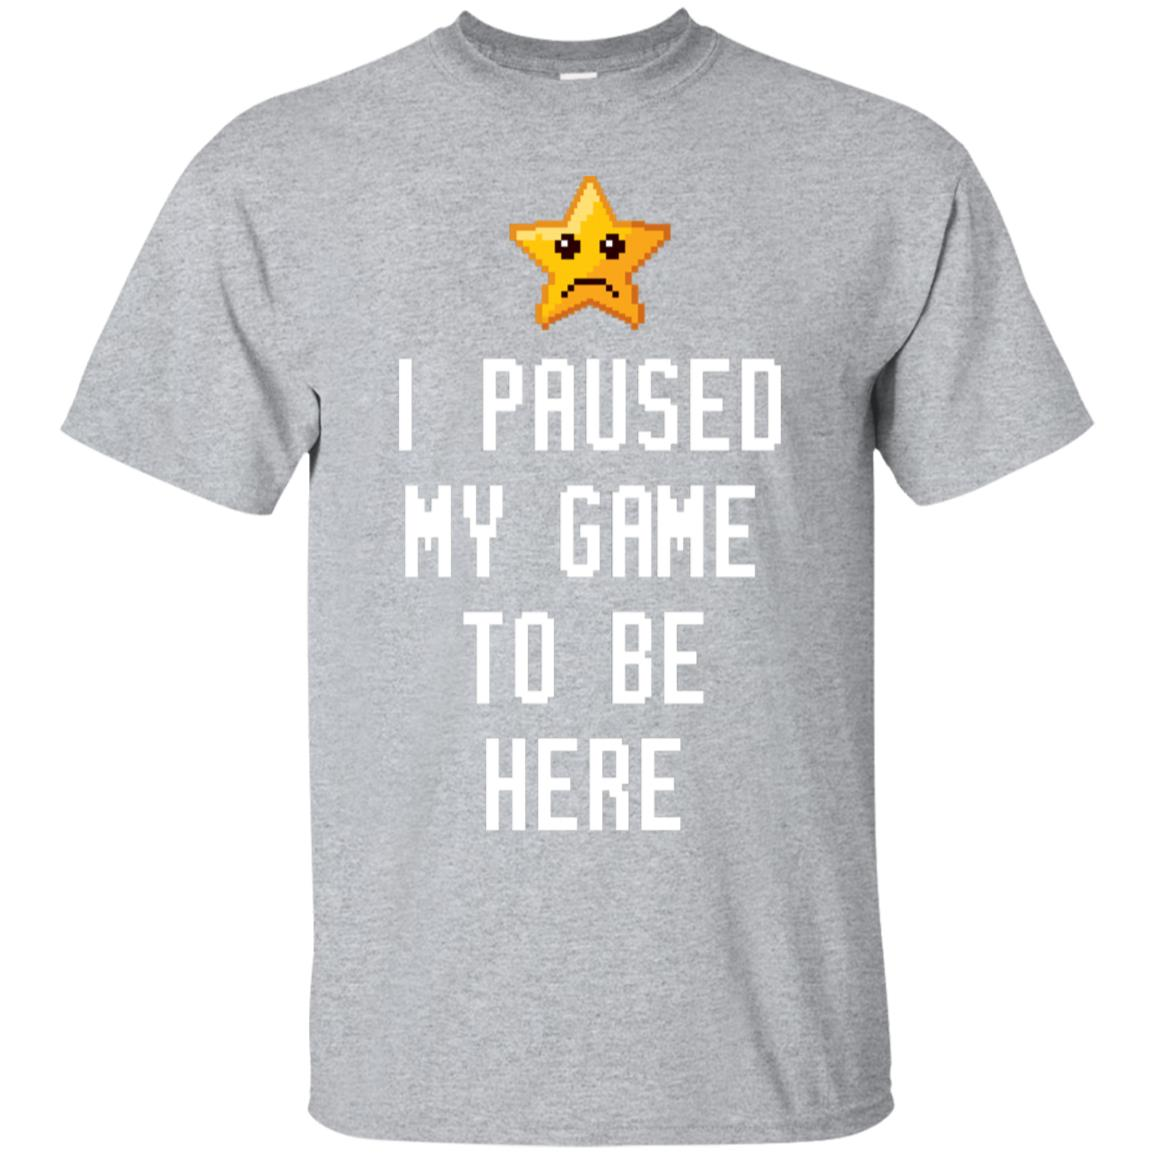 I Paused My Game To Be Here Funny Gamer Shirt 99promocode